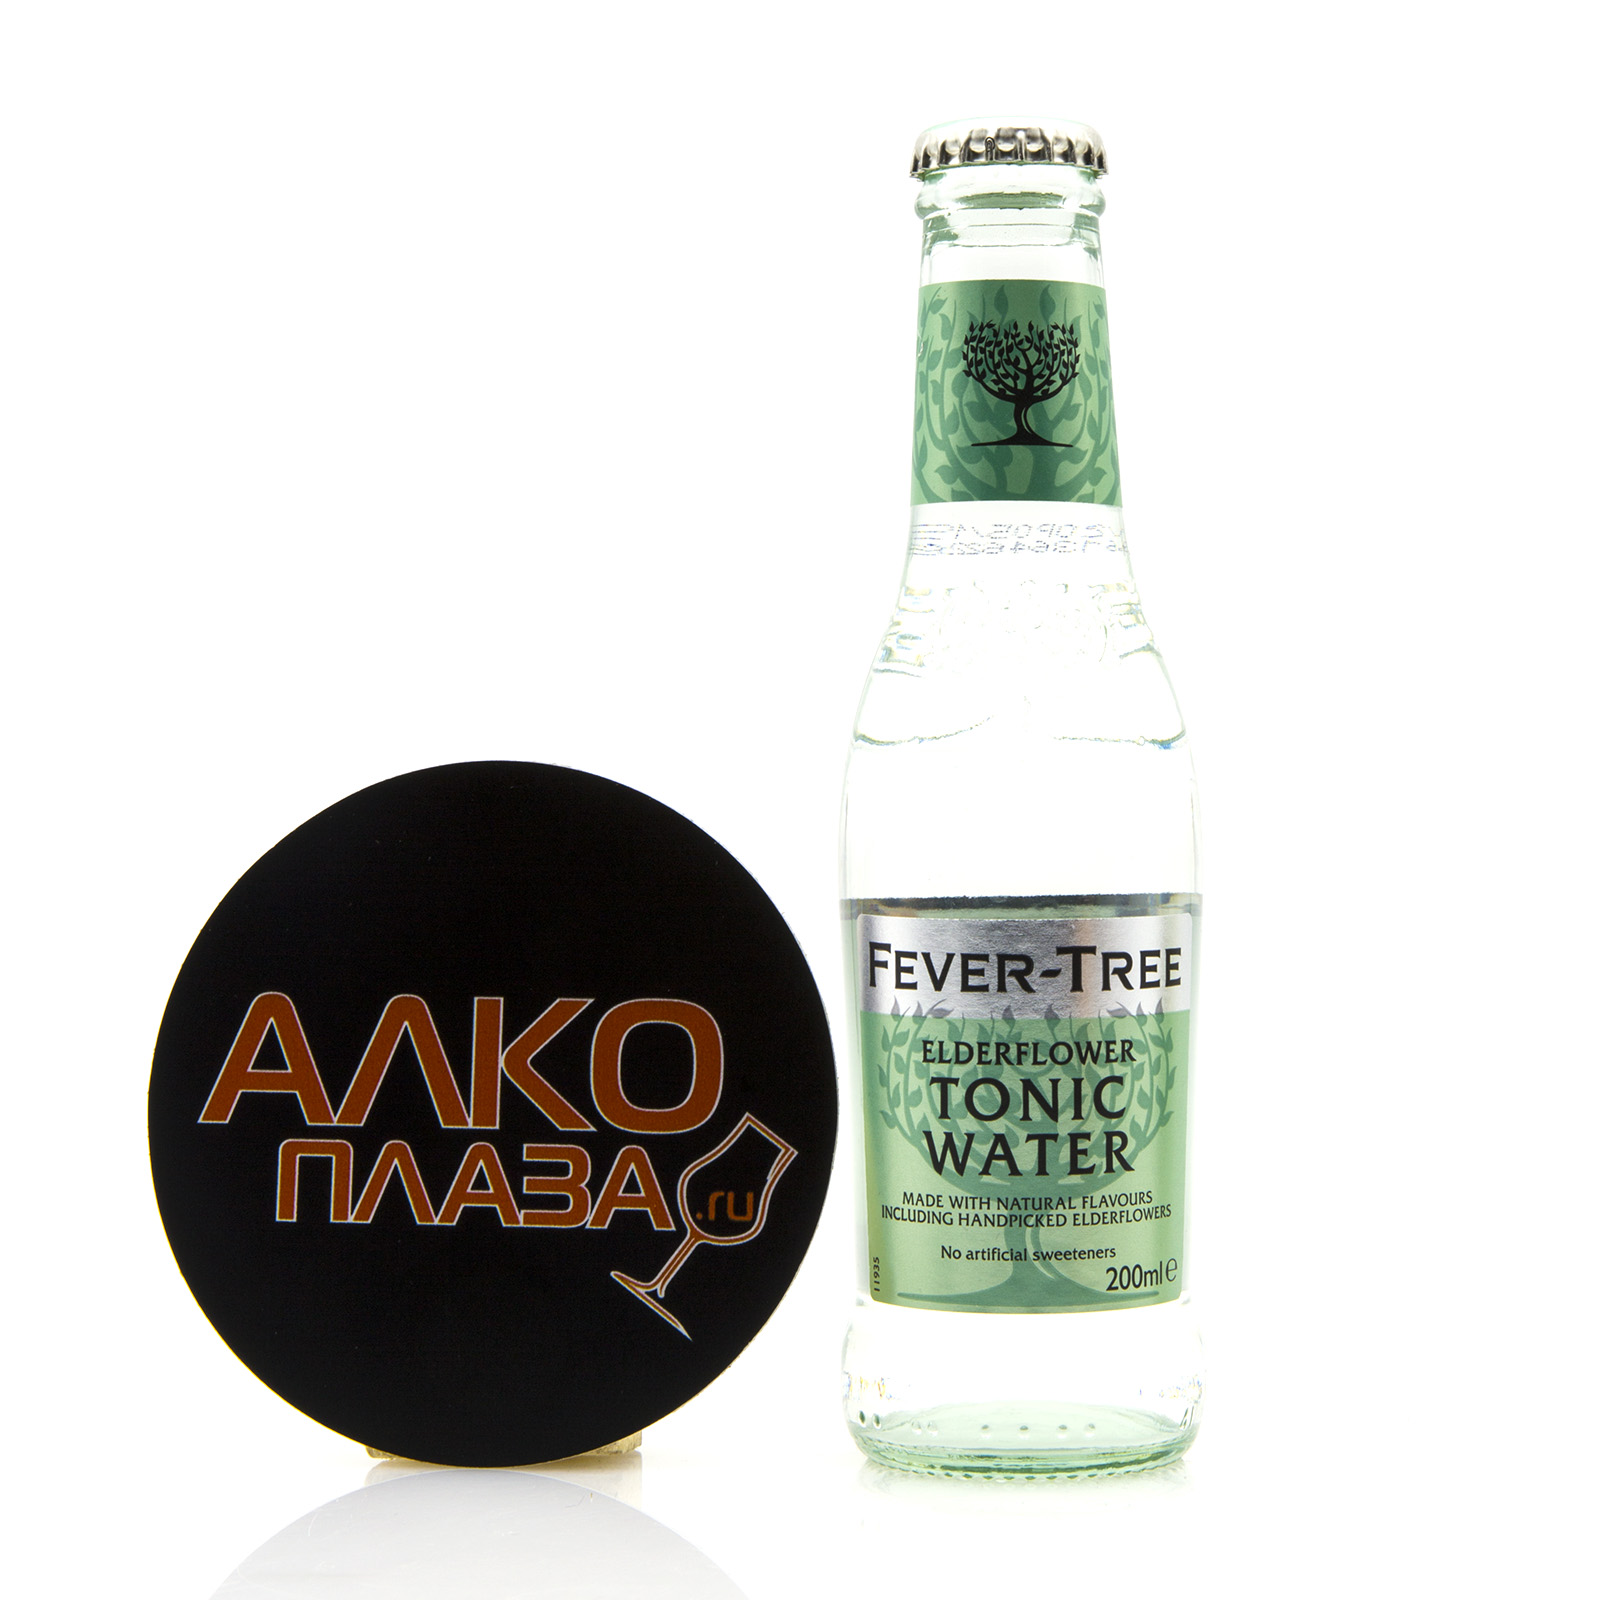 Fever Tree Elderflower Tonic Water - Февер Три Элдерфлауэр Тоник 0.2 л